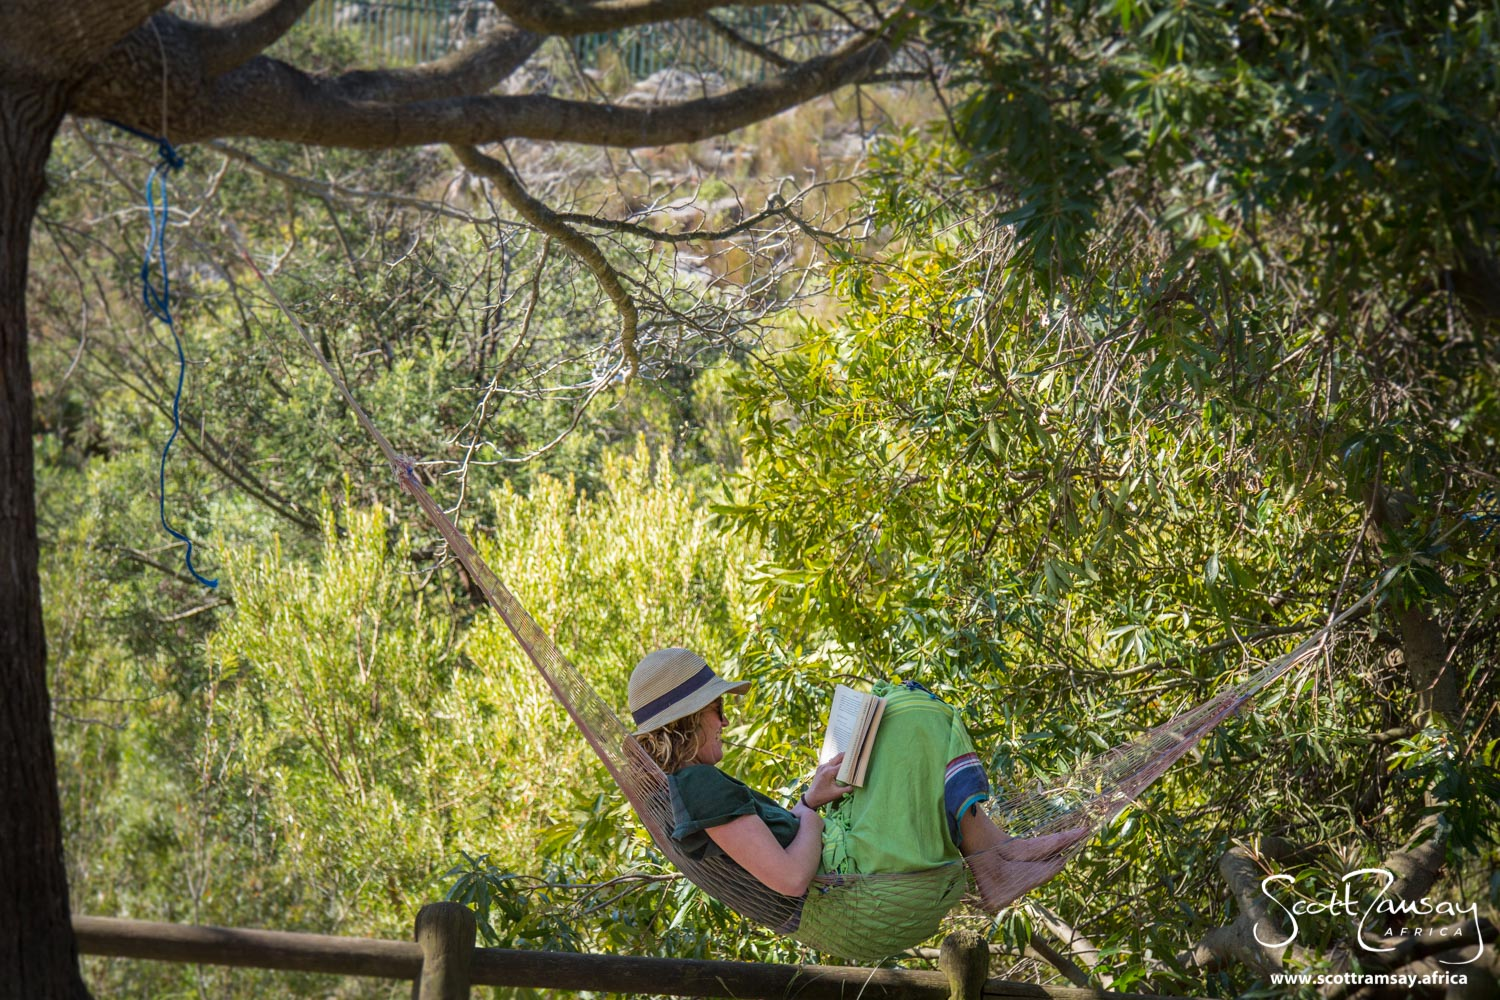 After a day of hard hiking, Jax Davis catches some air time in her hammock at Tweede Tol campsite.